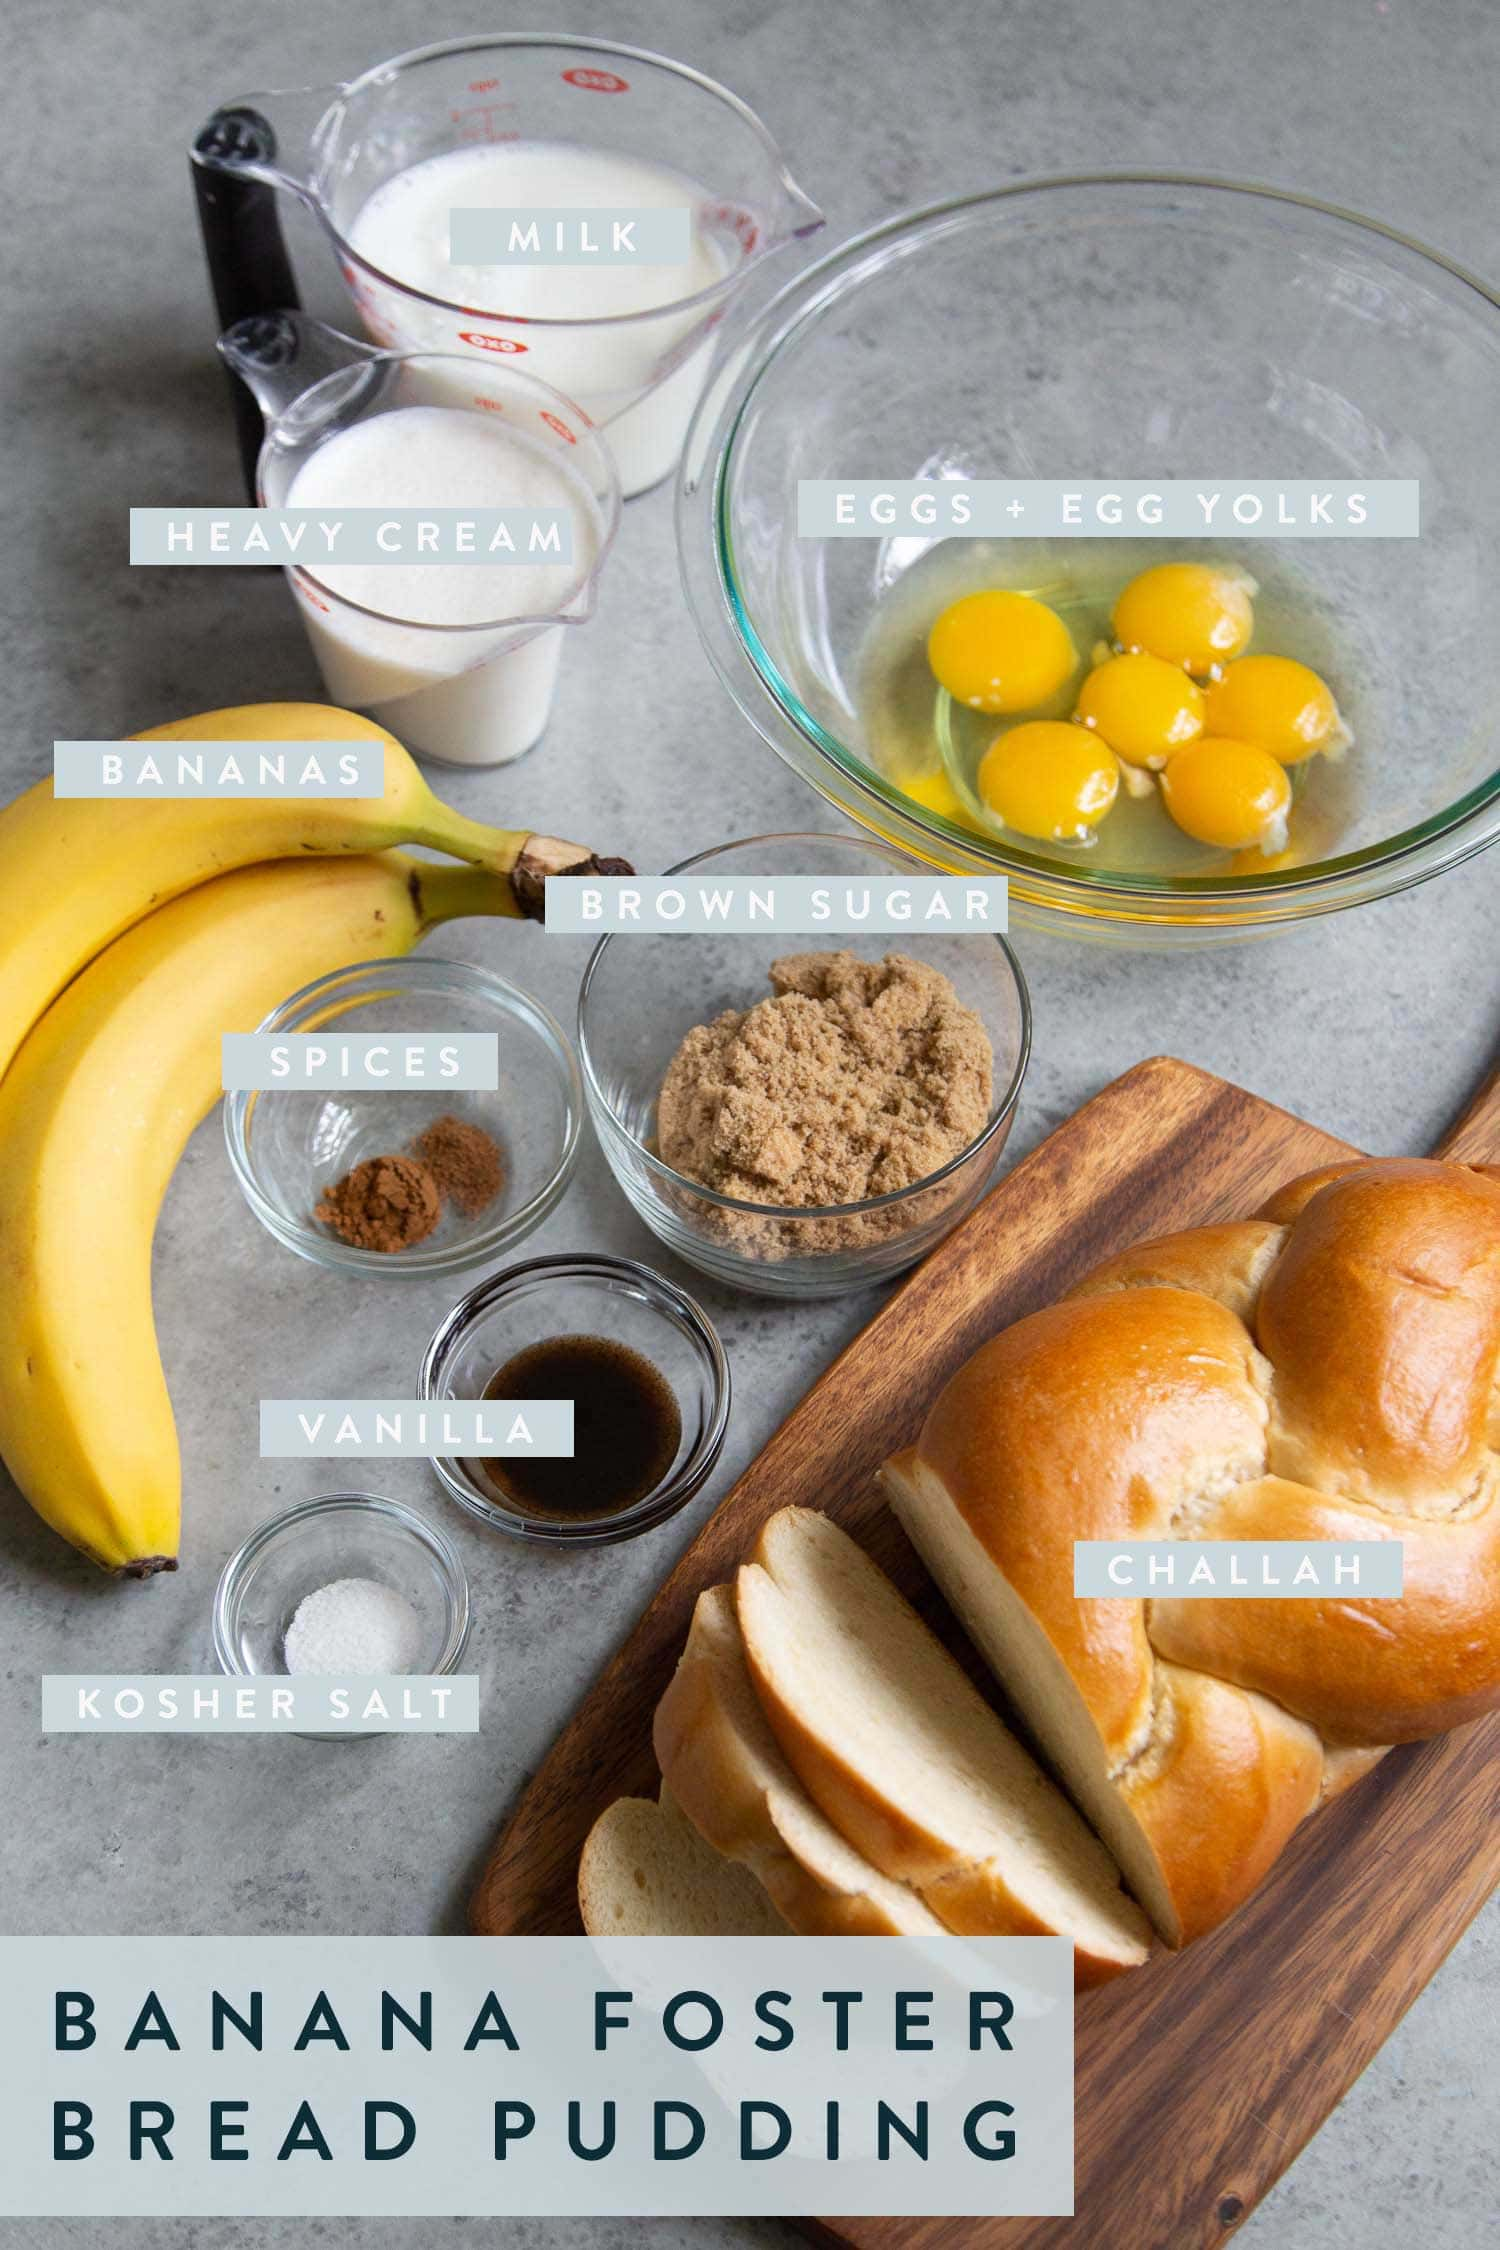 Ingredients needed for Banana Foster Bread Pudding